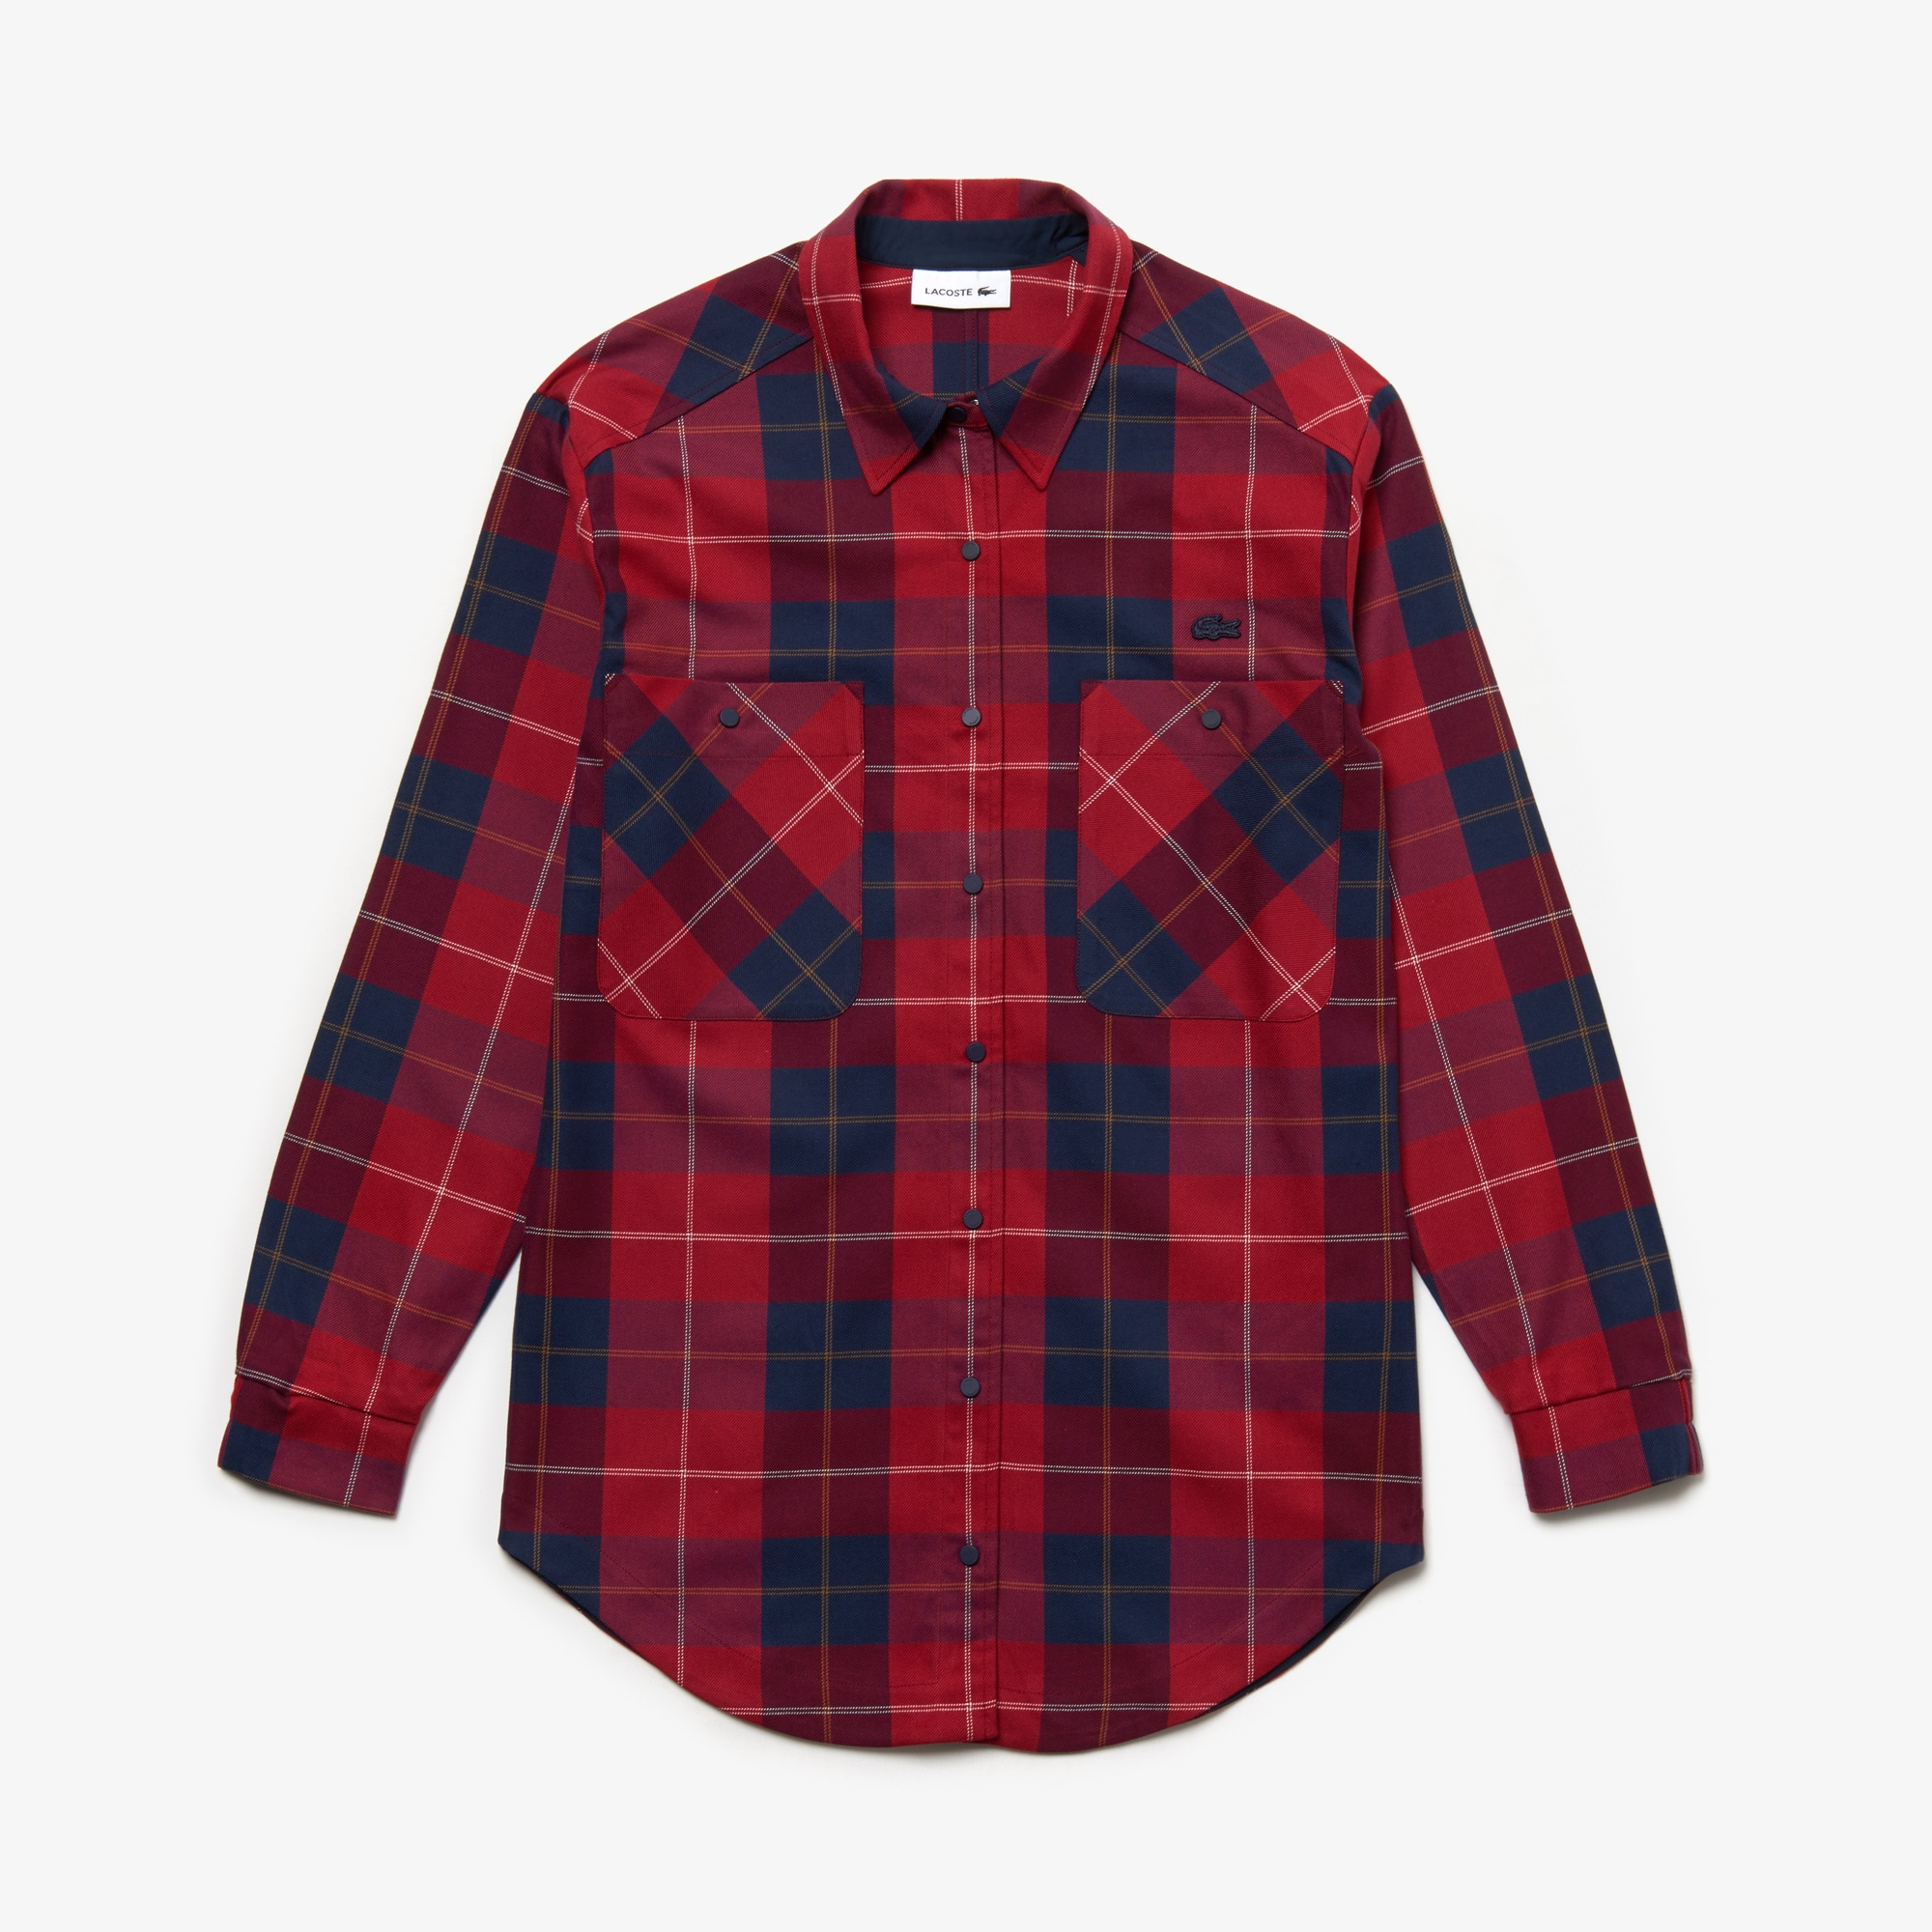 Women's Slim Fit Stretch Check Cotton Canvas Shirt